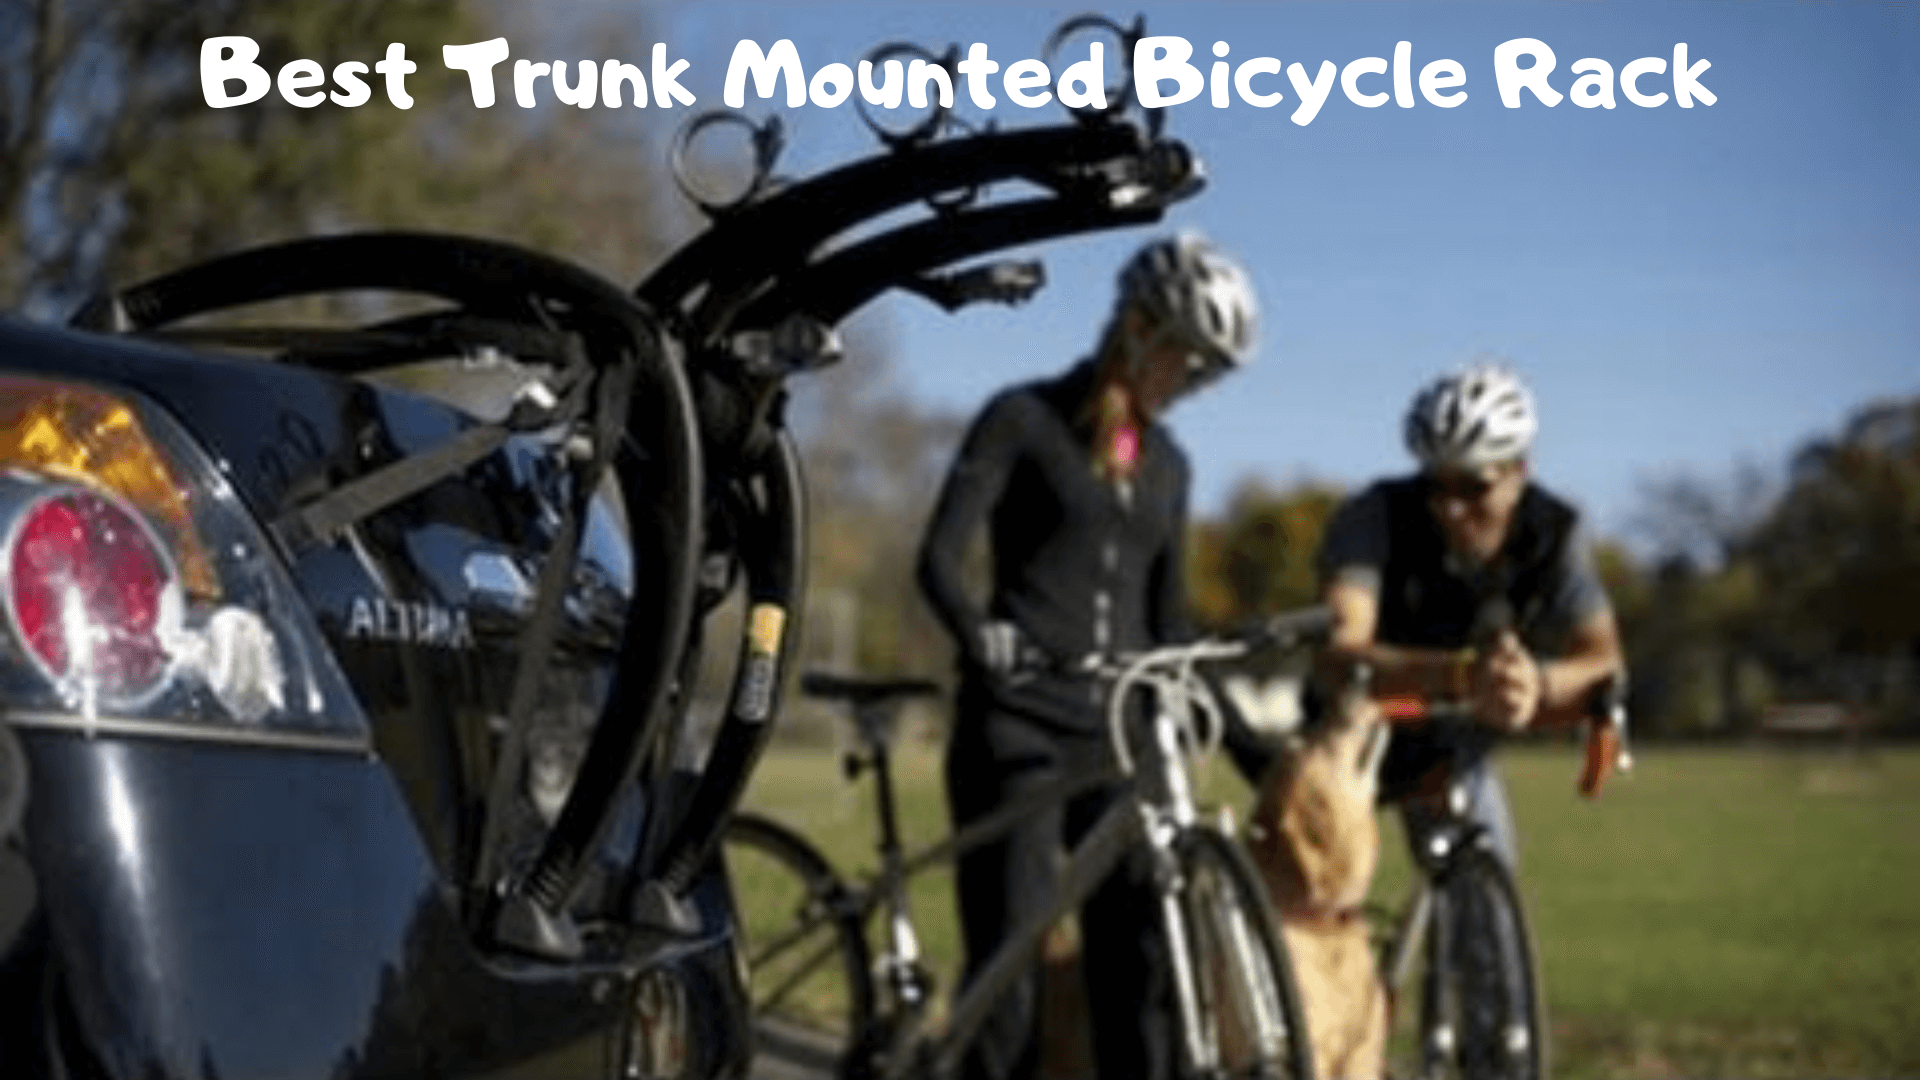 5+ Best Trunk Mounted Bicycle Rack In 2020